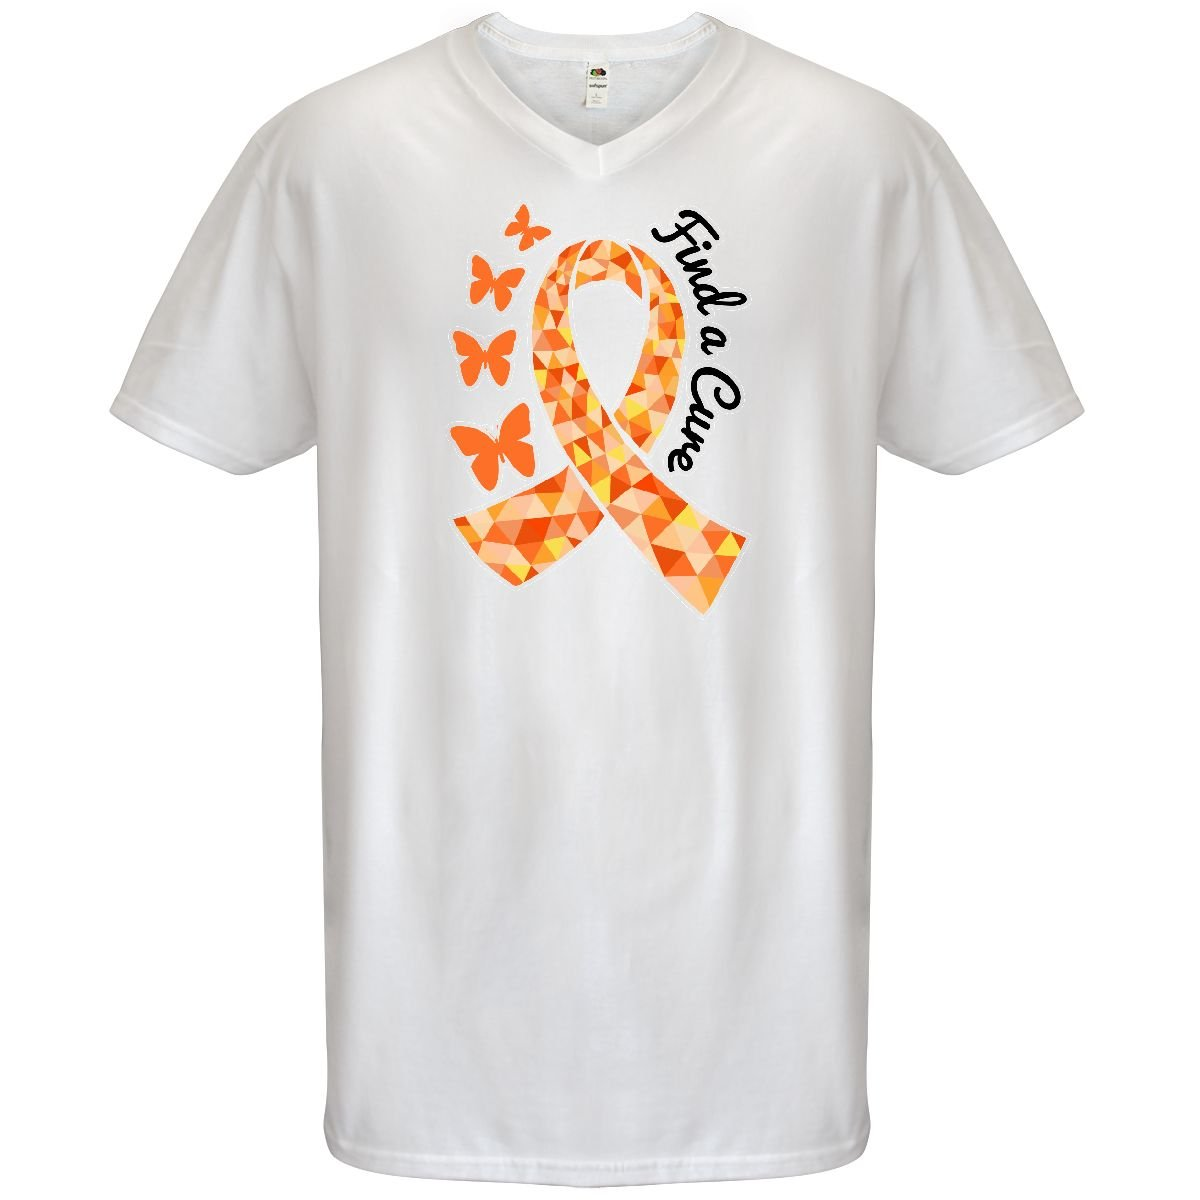 4a055c8c385 Inktastic - Find a Cure with Orange Ribbon and Men s V-Neck T-Shirt Small  White  Amazon.com  Books